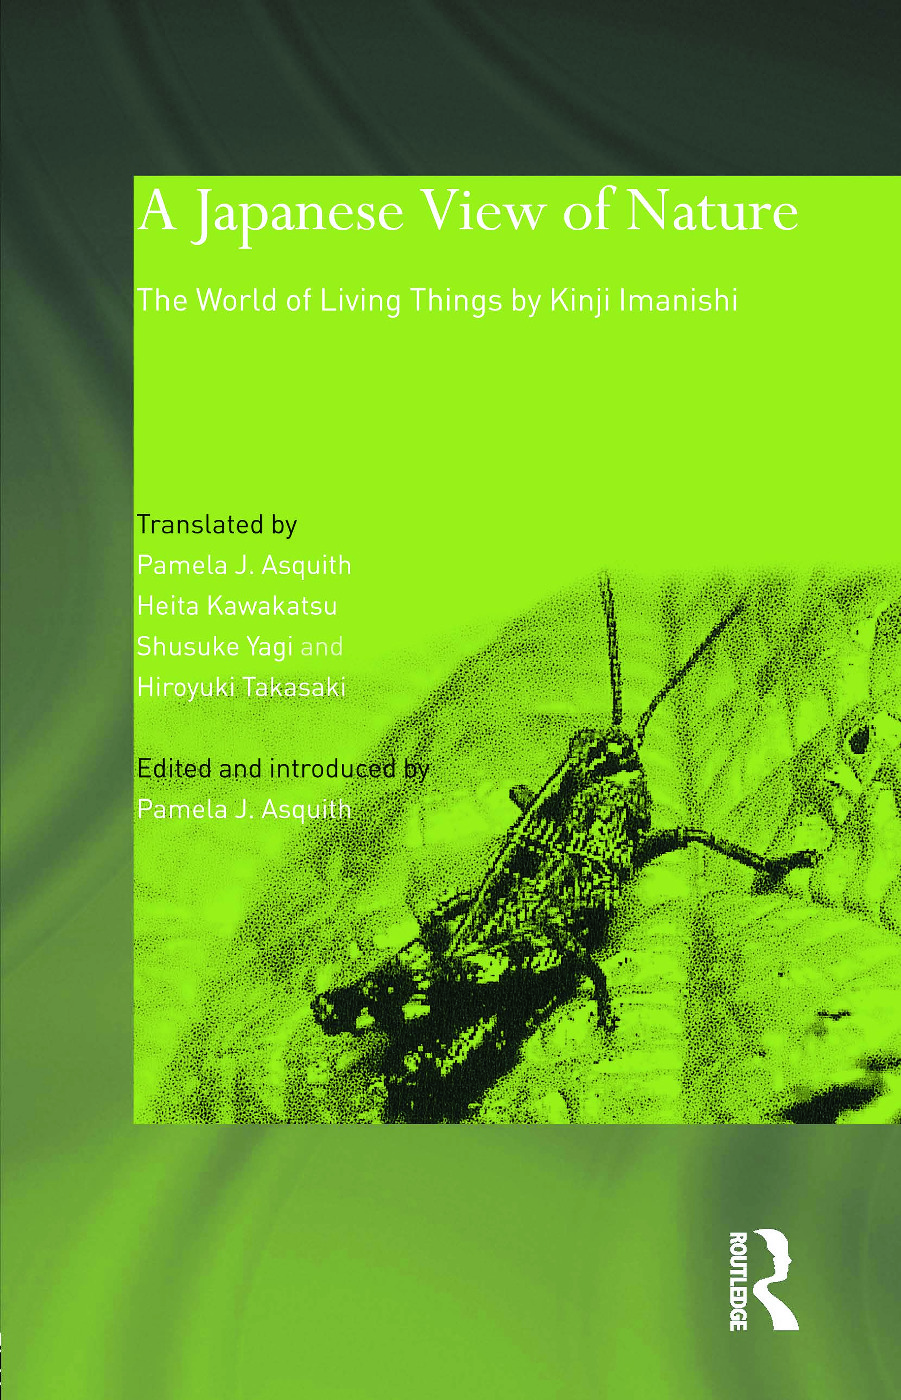 A Japanese View of Nature: The World of Living Things by Kinji Imanishi (Paperback) book cover